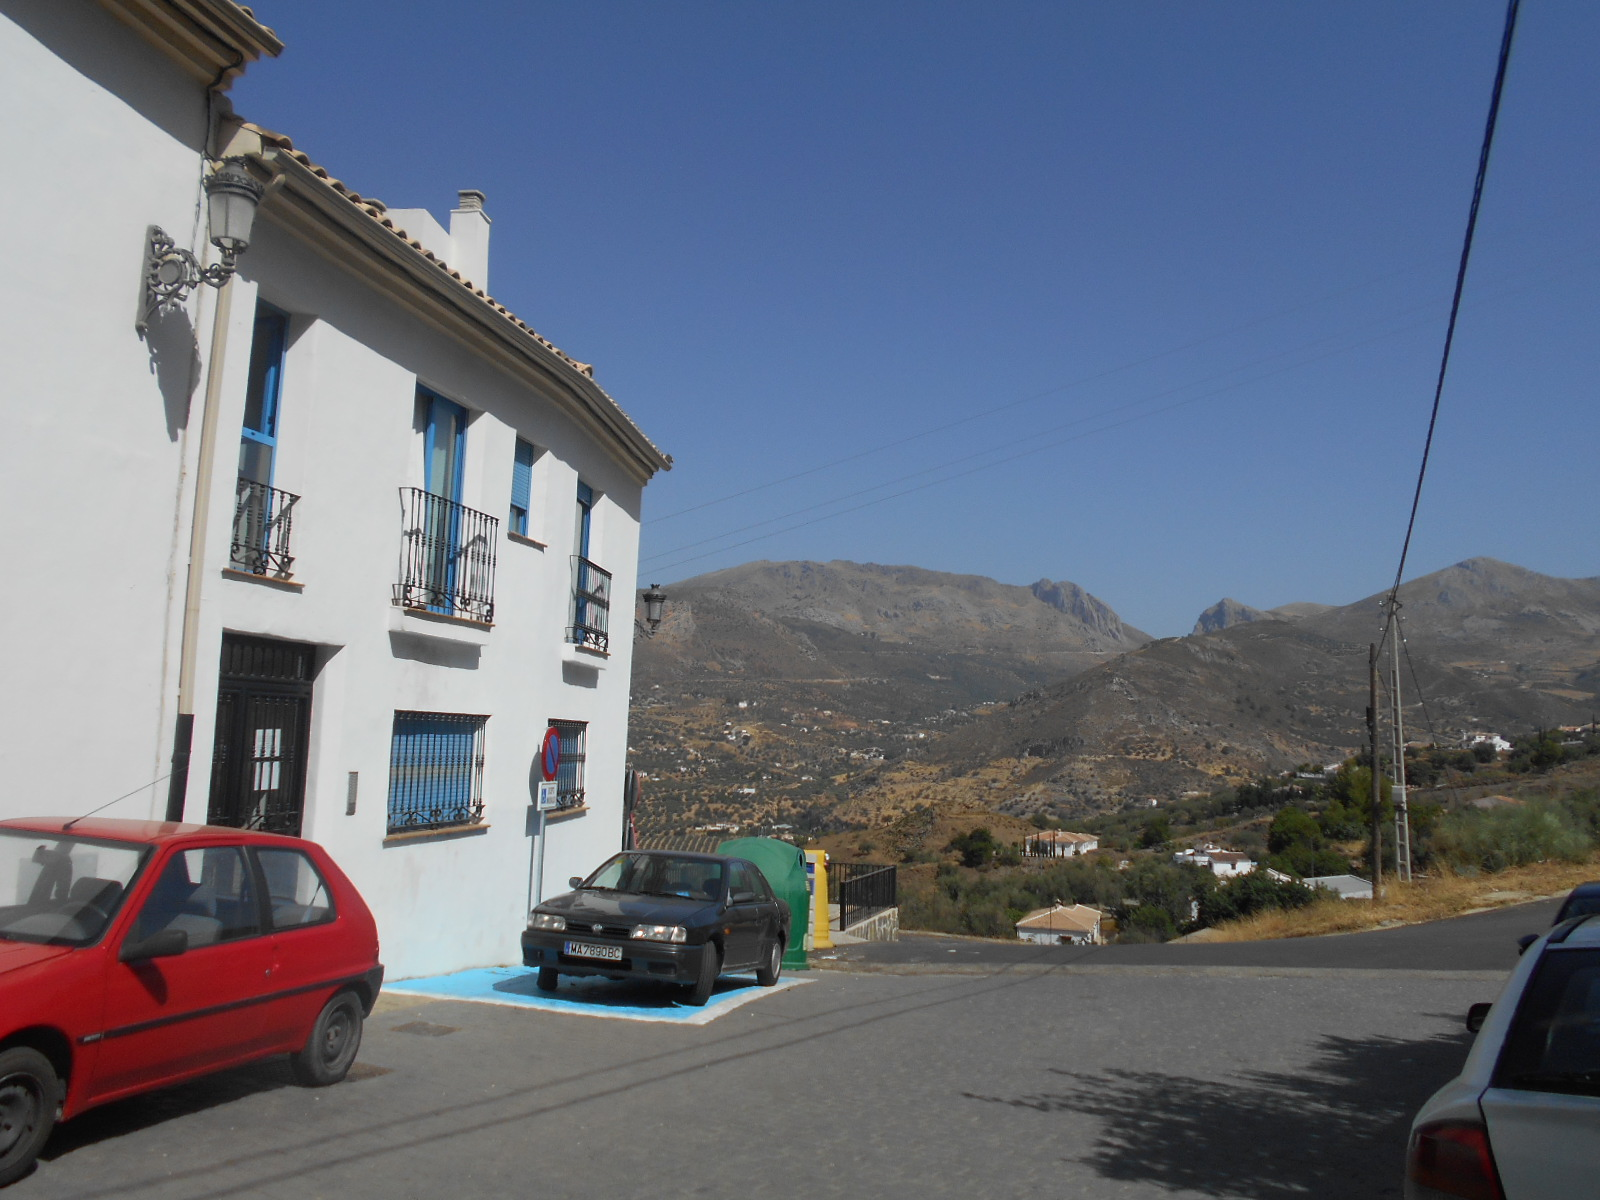 2 BEDROOM APARTMENT IN ALCAUCIN From £150/WEEK UP TO 6 PEOPLE